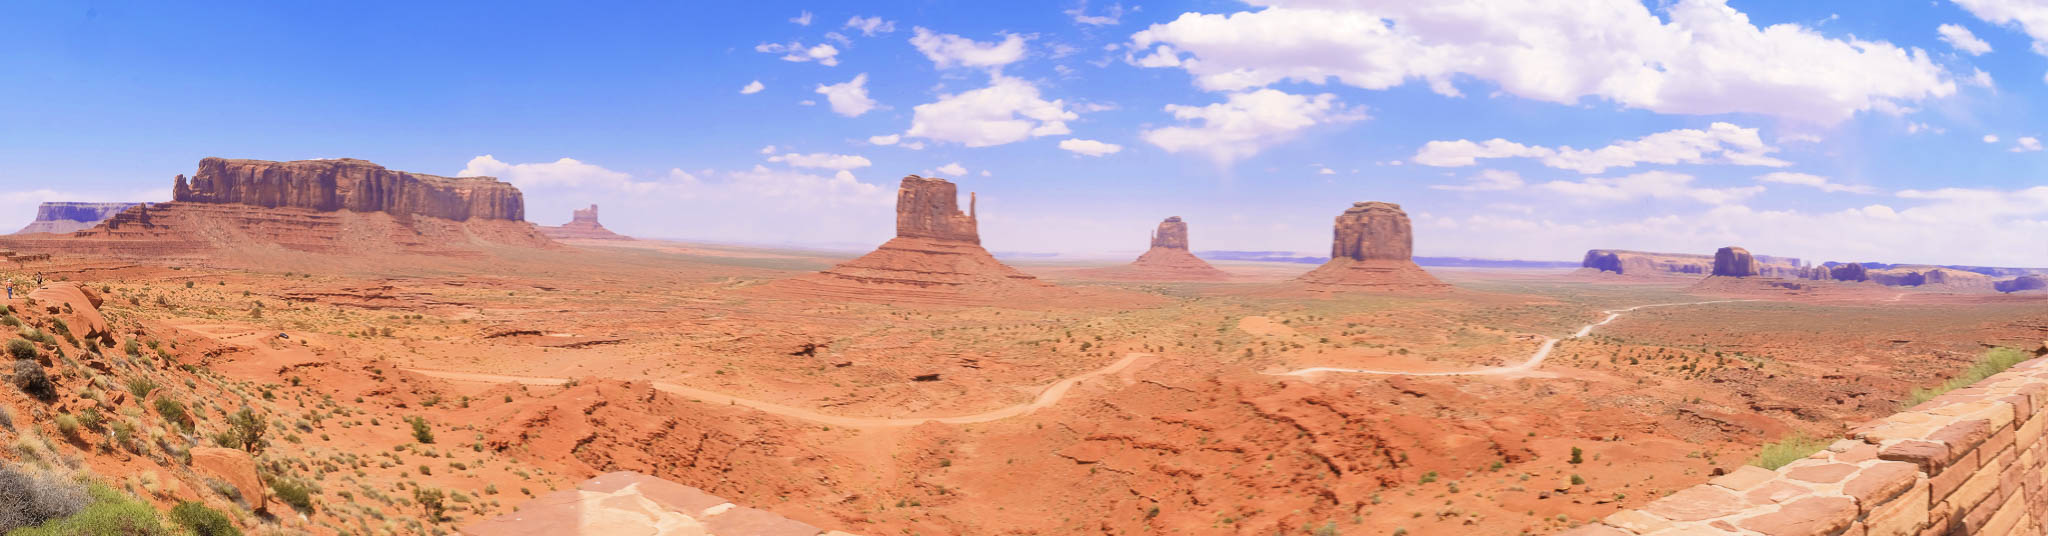 Monument Valley-2017--14.jpg